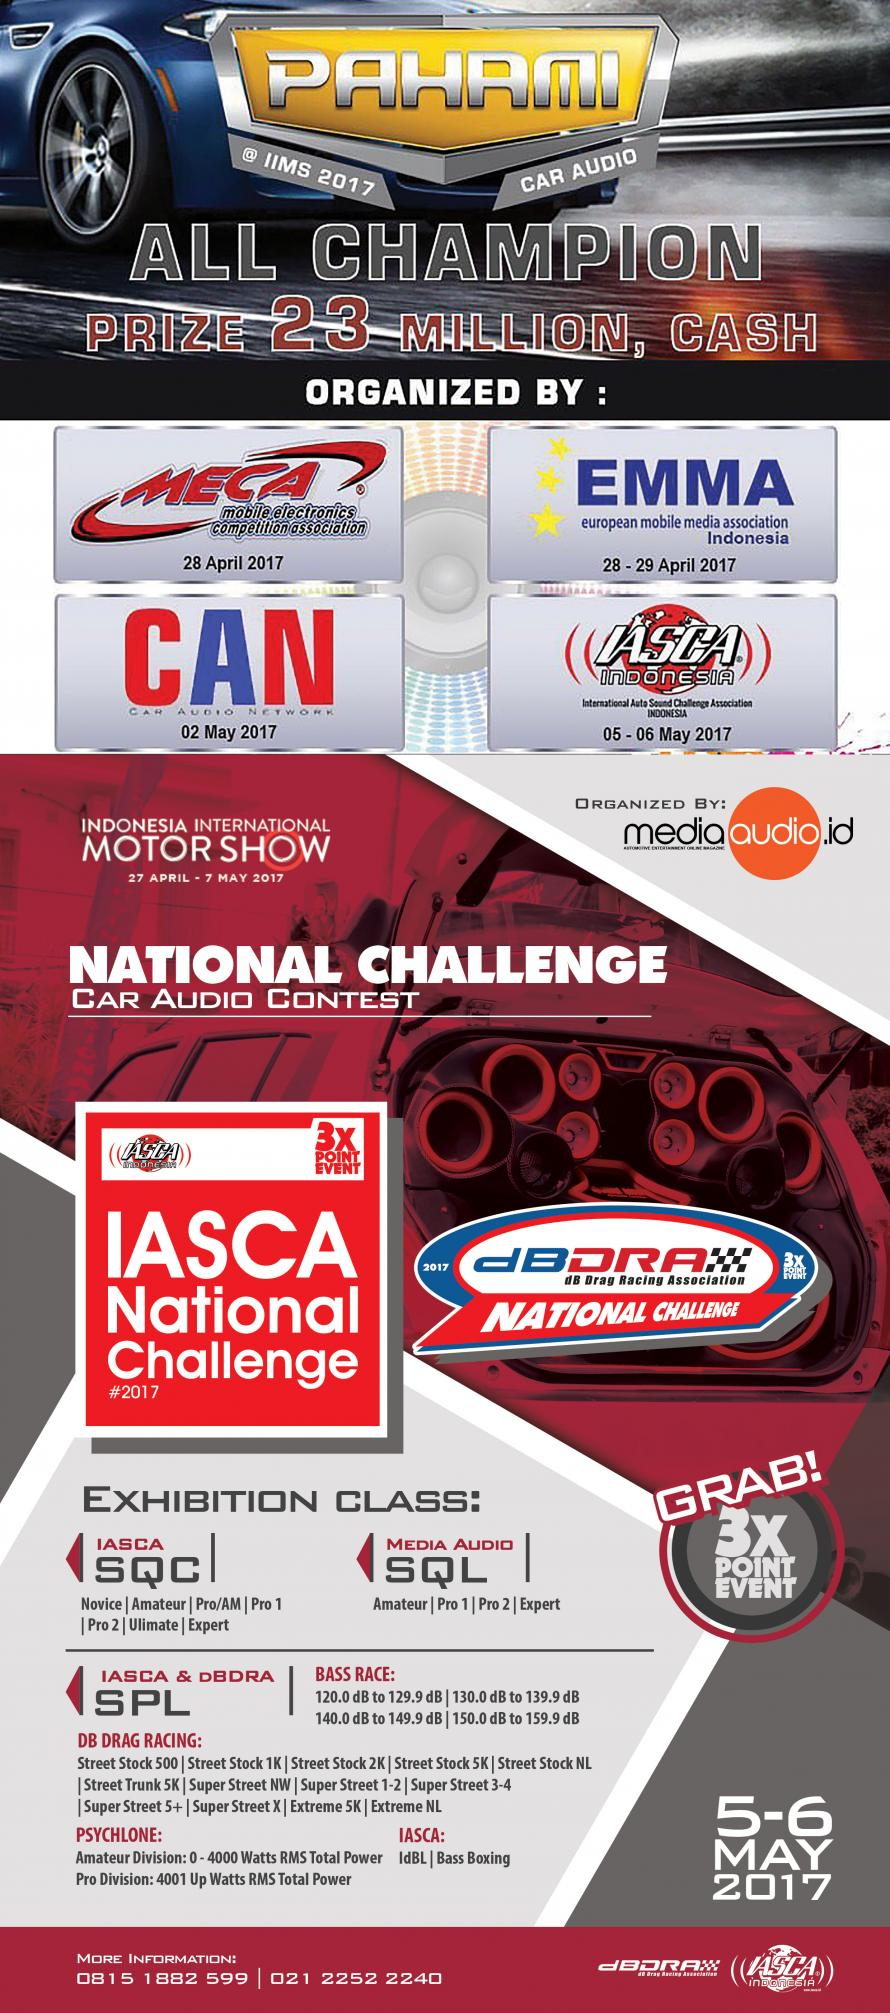 IASCA & DB DRA di Pahami Car Audio Contest IIMS 2017